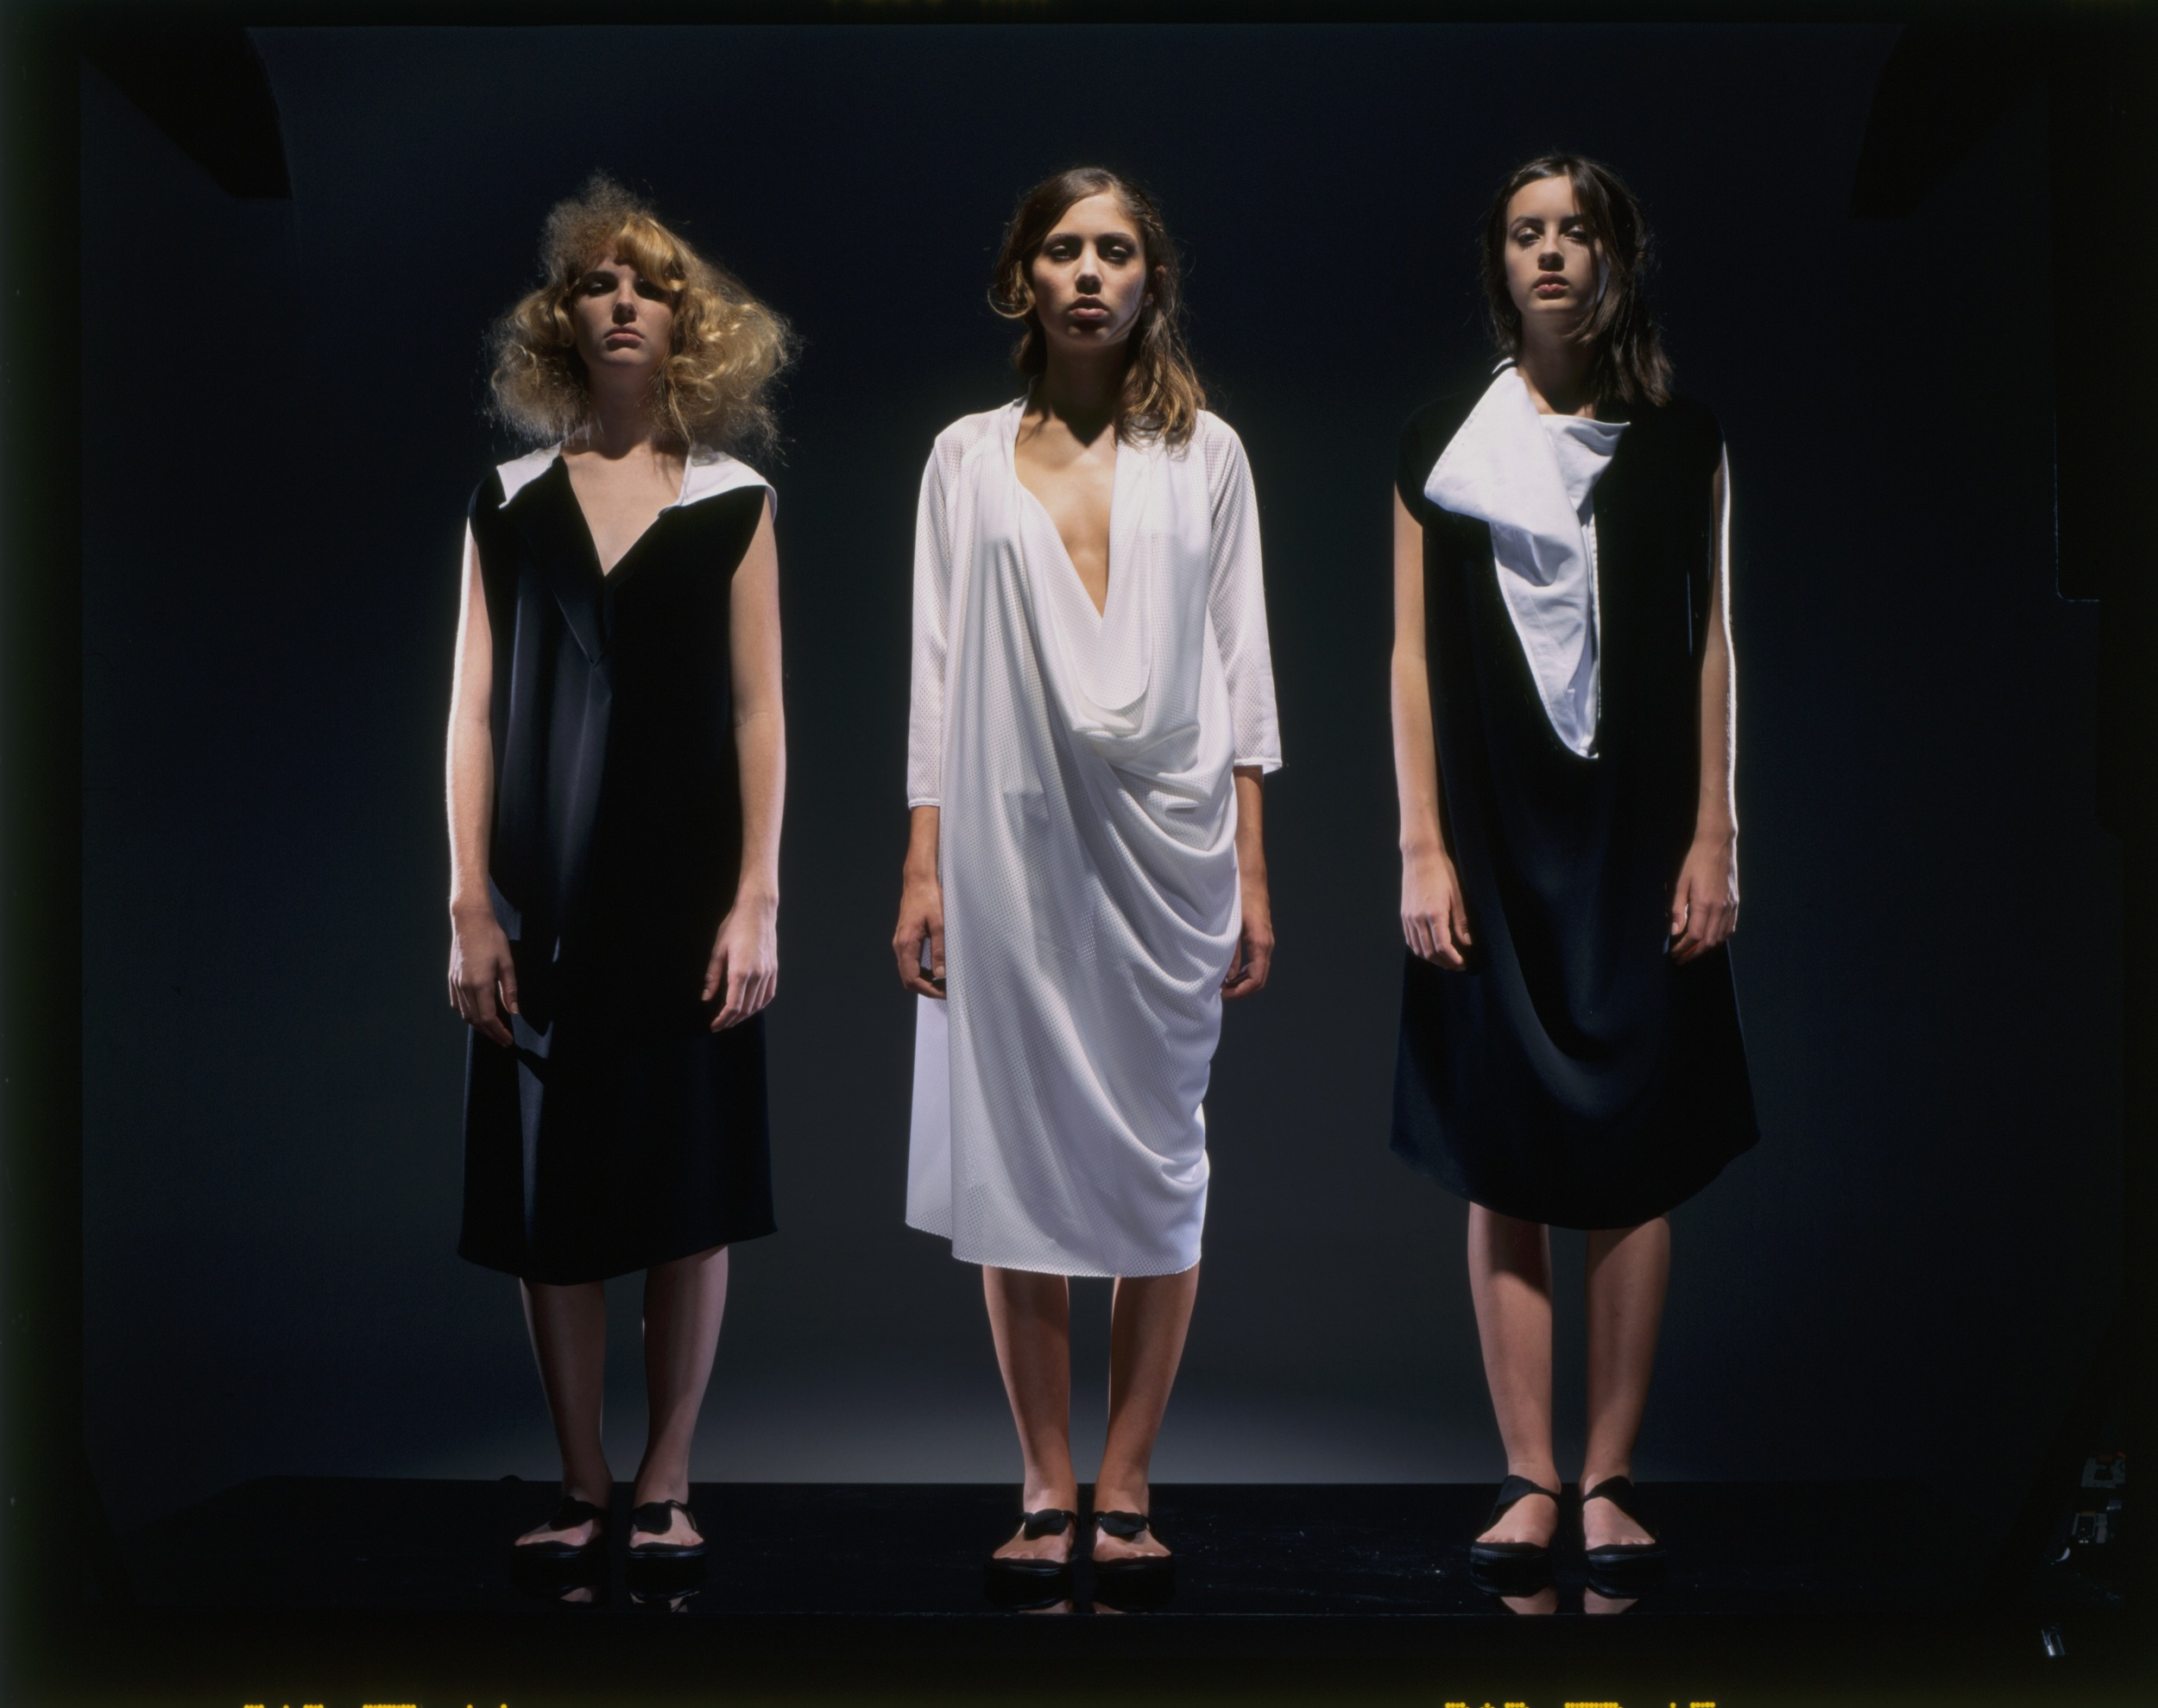 Shelley Fox 14 collection, 2012, photography by HIROSHIKUTOMI, as part of Shelley Fox's presentation